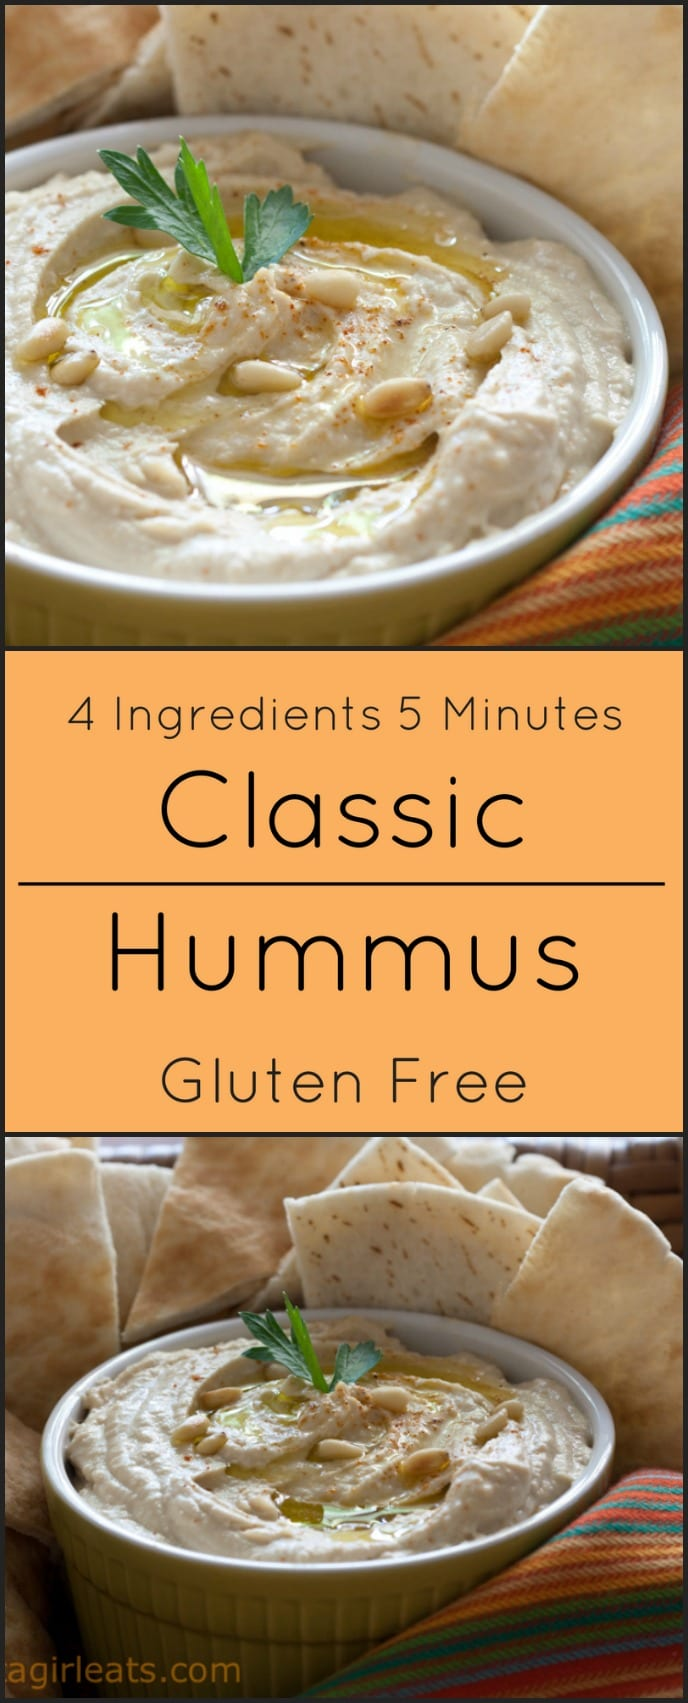 Easy 4 ingredient hummus takes just 5 minutes and is also gluten free!